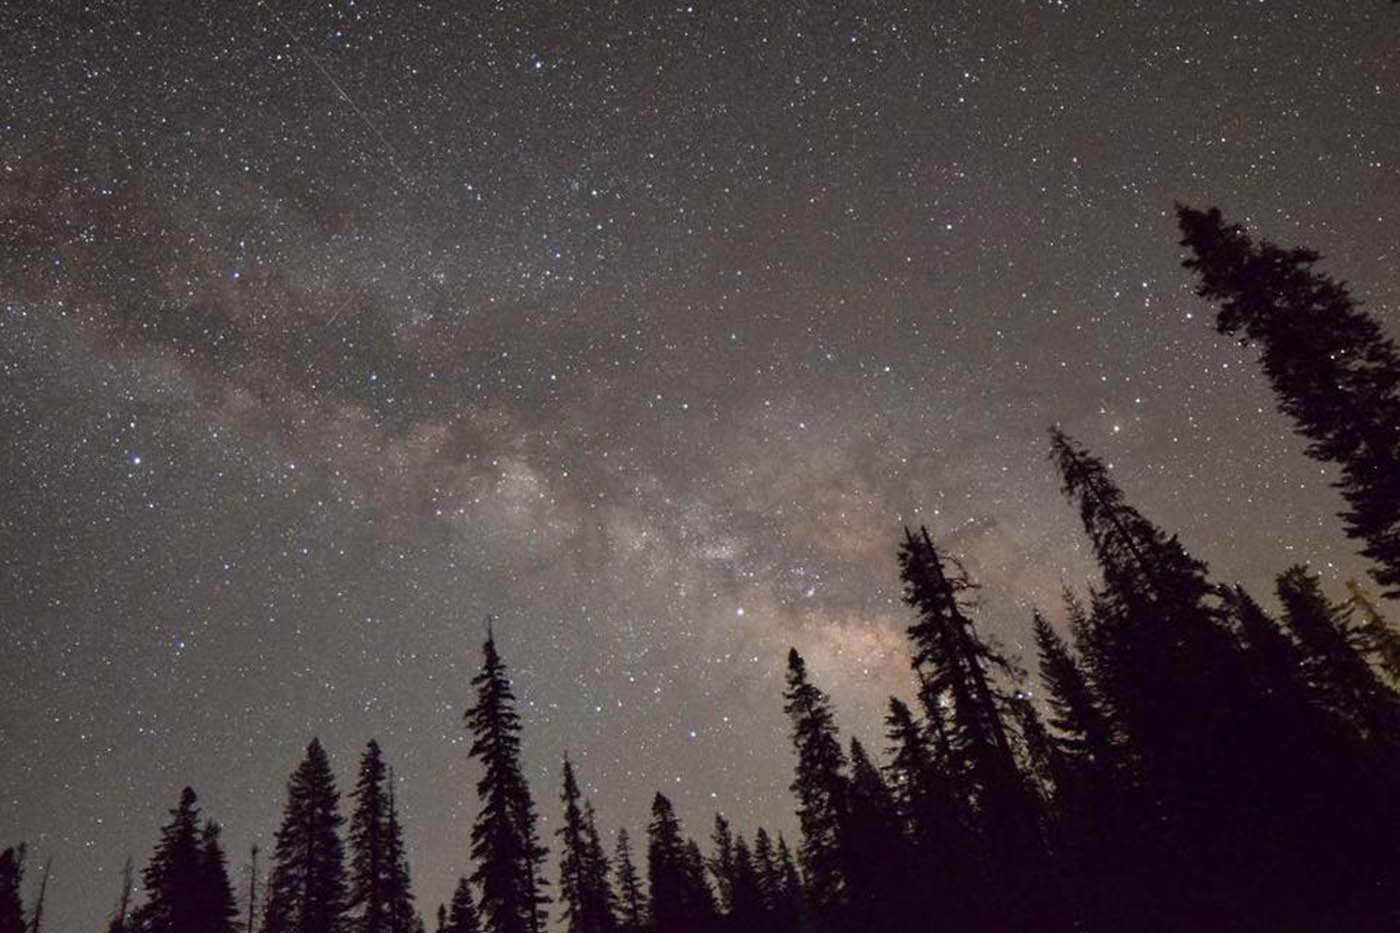 The Milky Way, as seen from Sequoia National Park